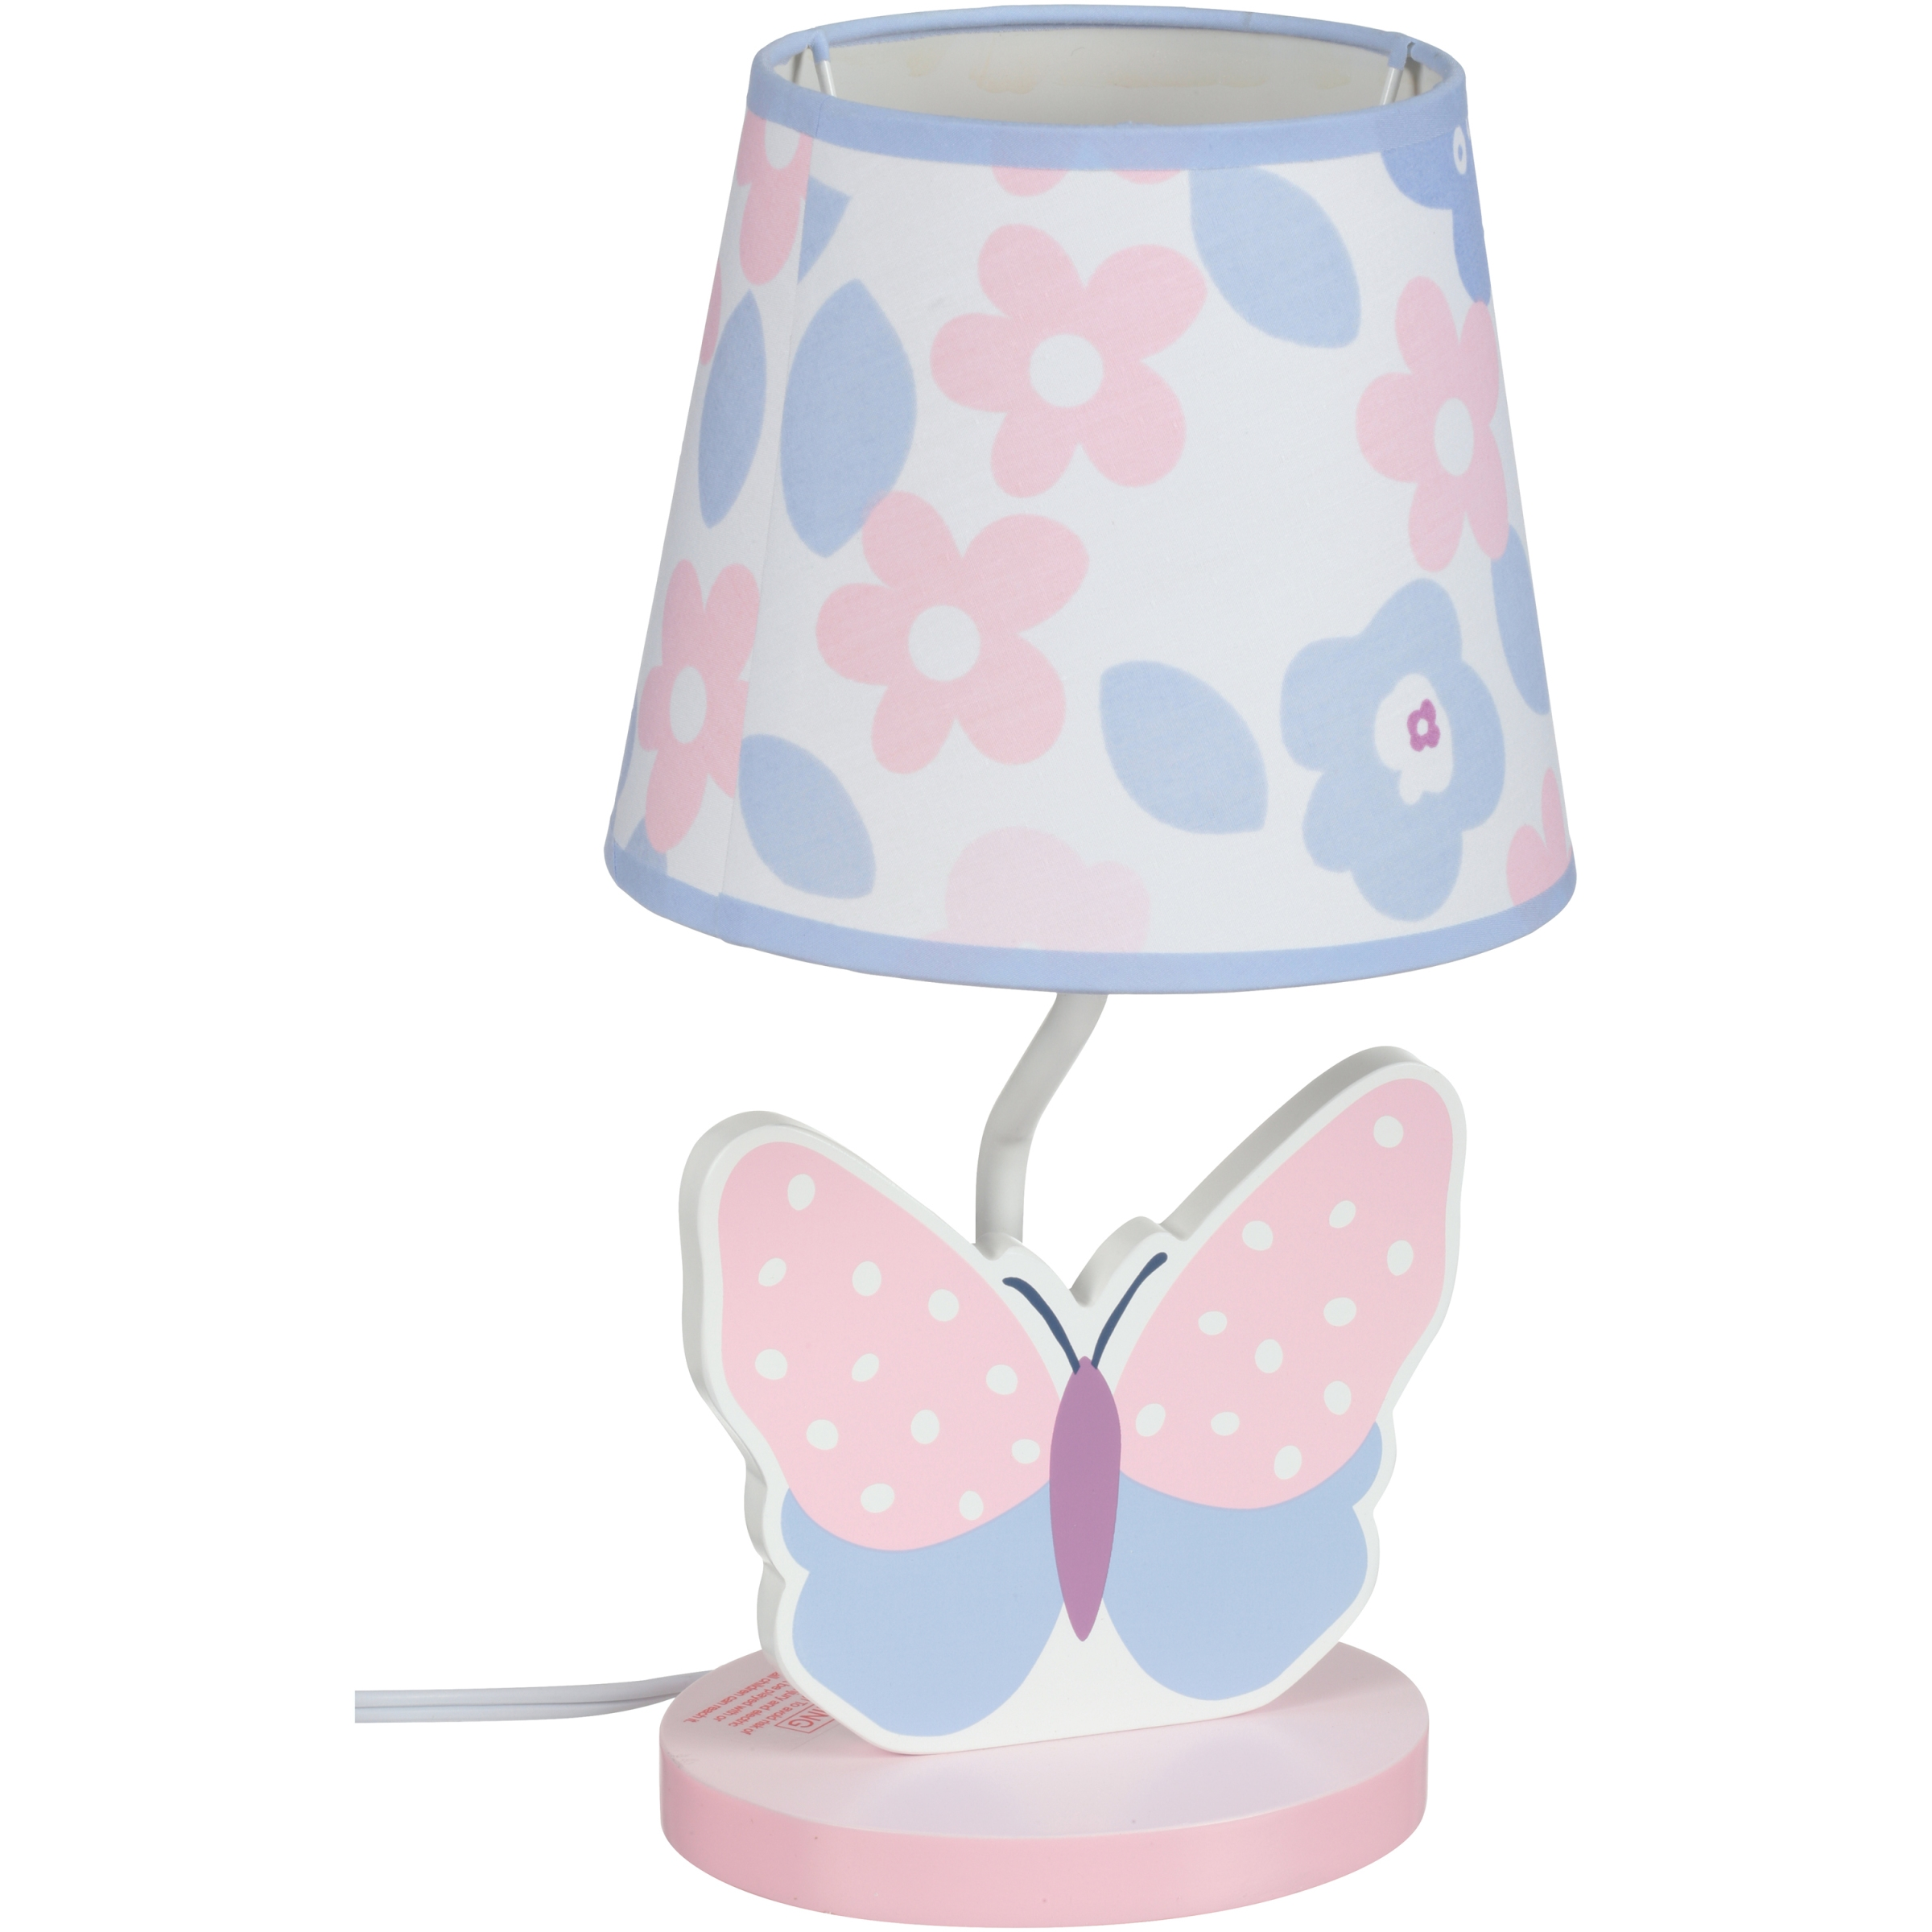 Bedtime Originals Lamp Butterfly Meadow Collection -1 CT1.0 CT by Bedtime Originals